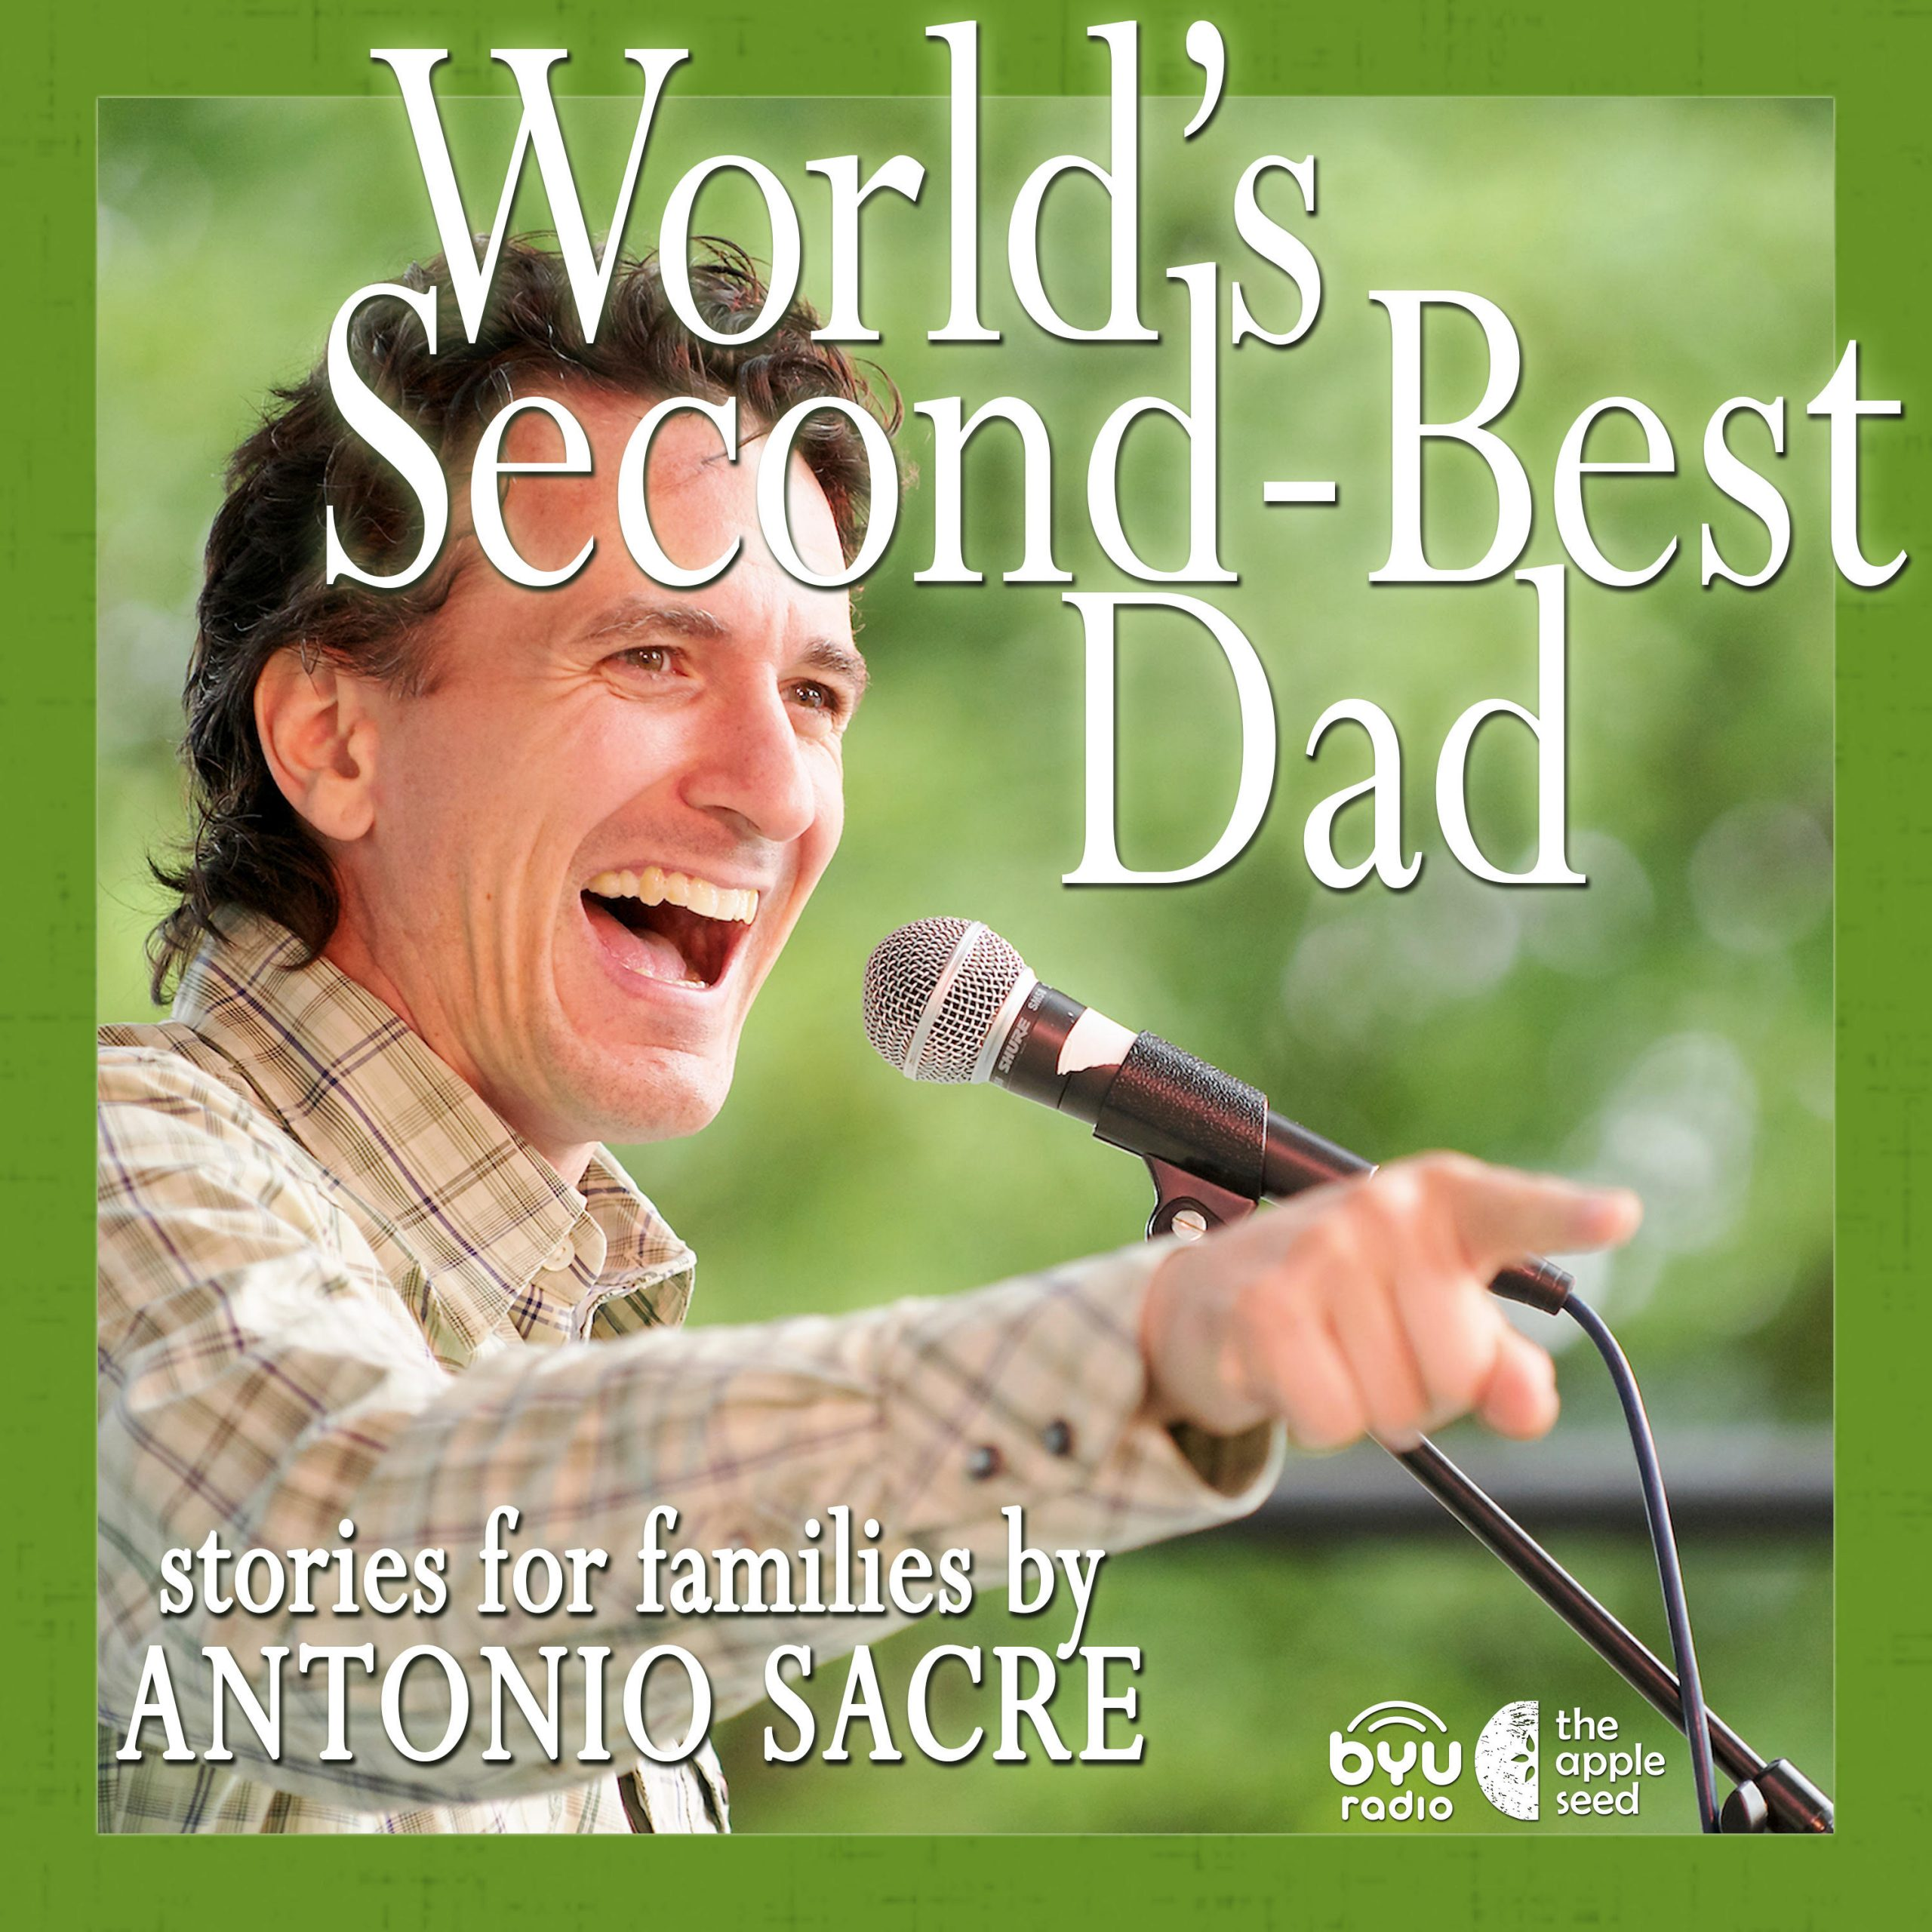 """World's Second-Best Dad"" by Antonio Sacre"